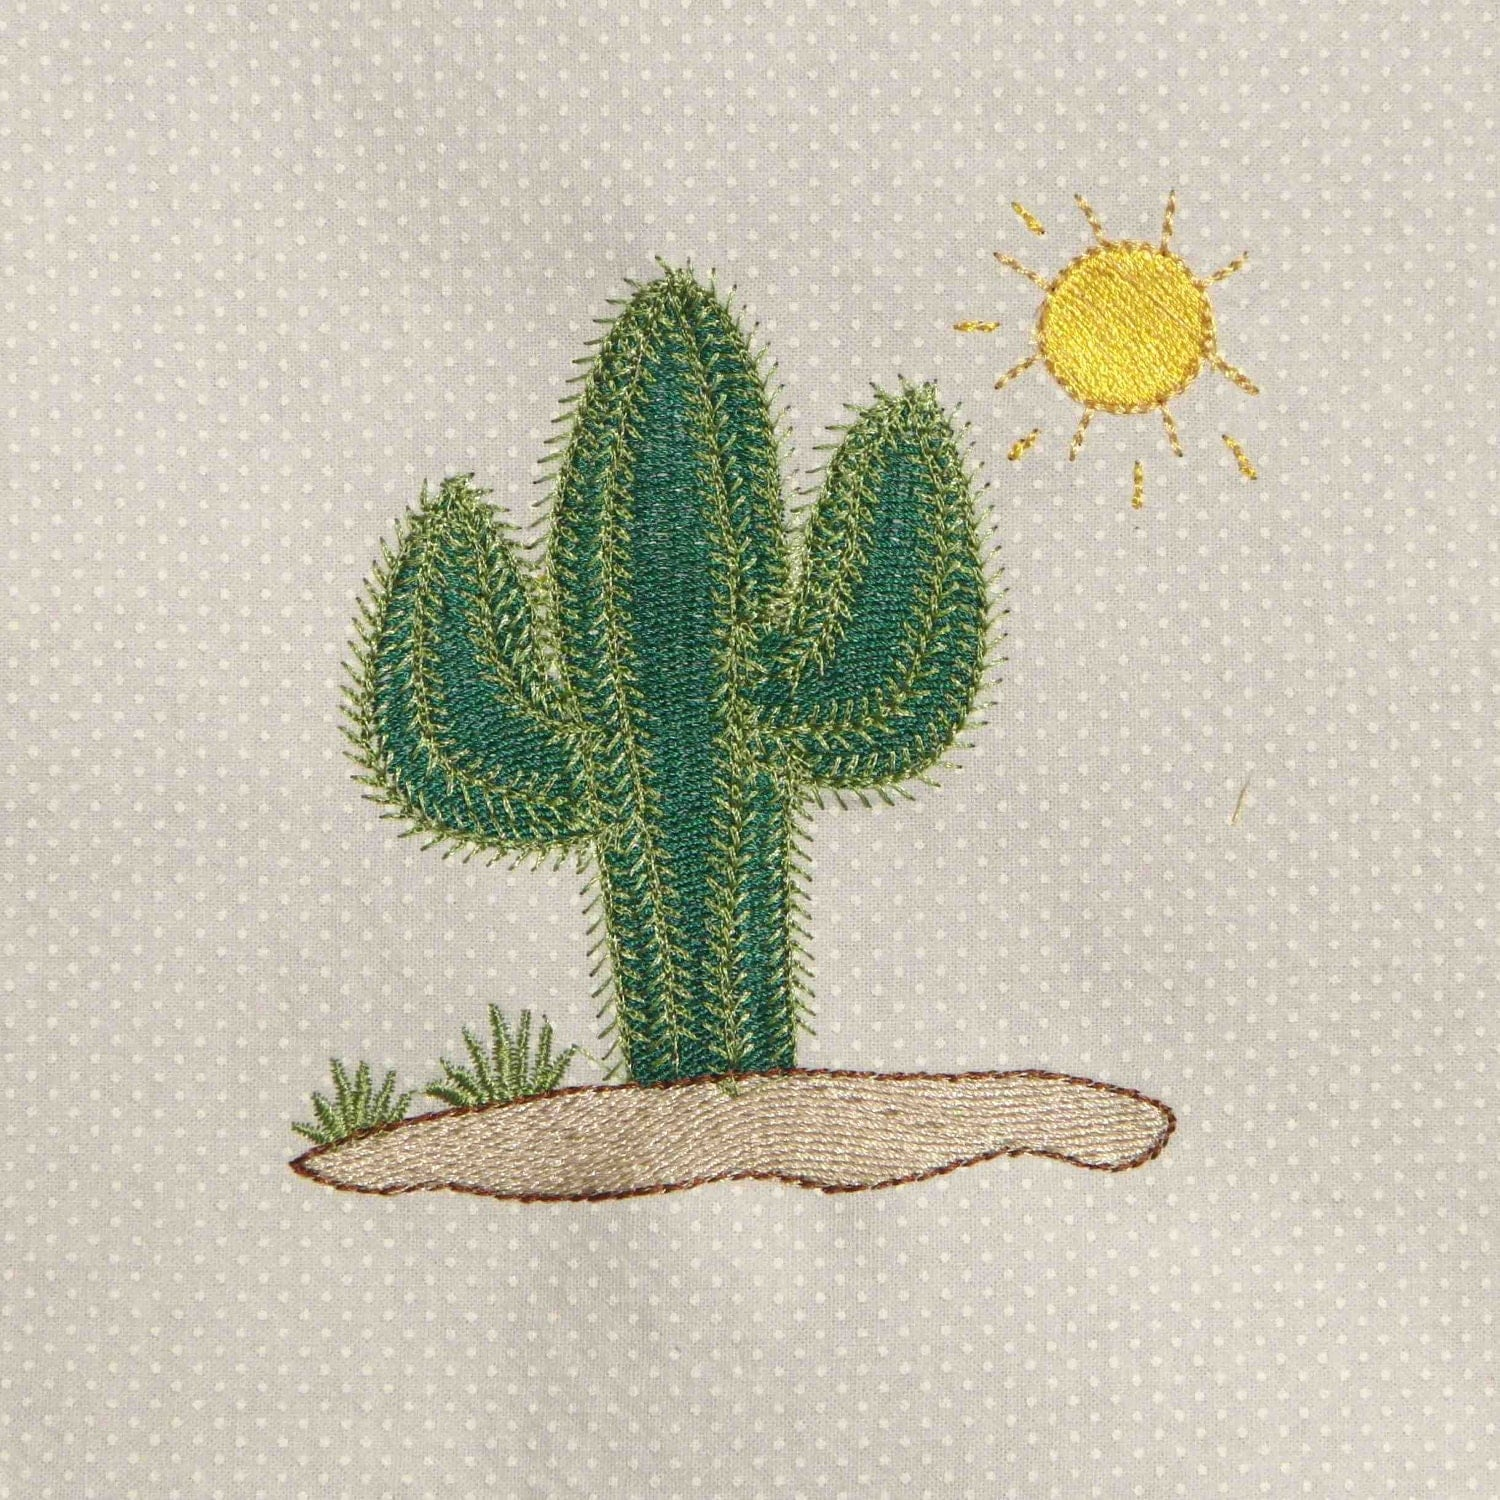 Cactus embroidered quilt block by amy amyglitterbug on etsy